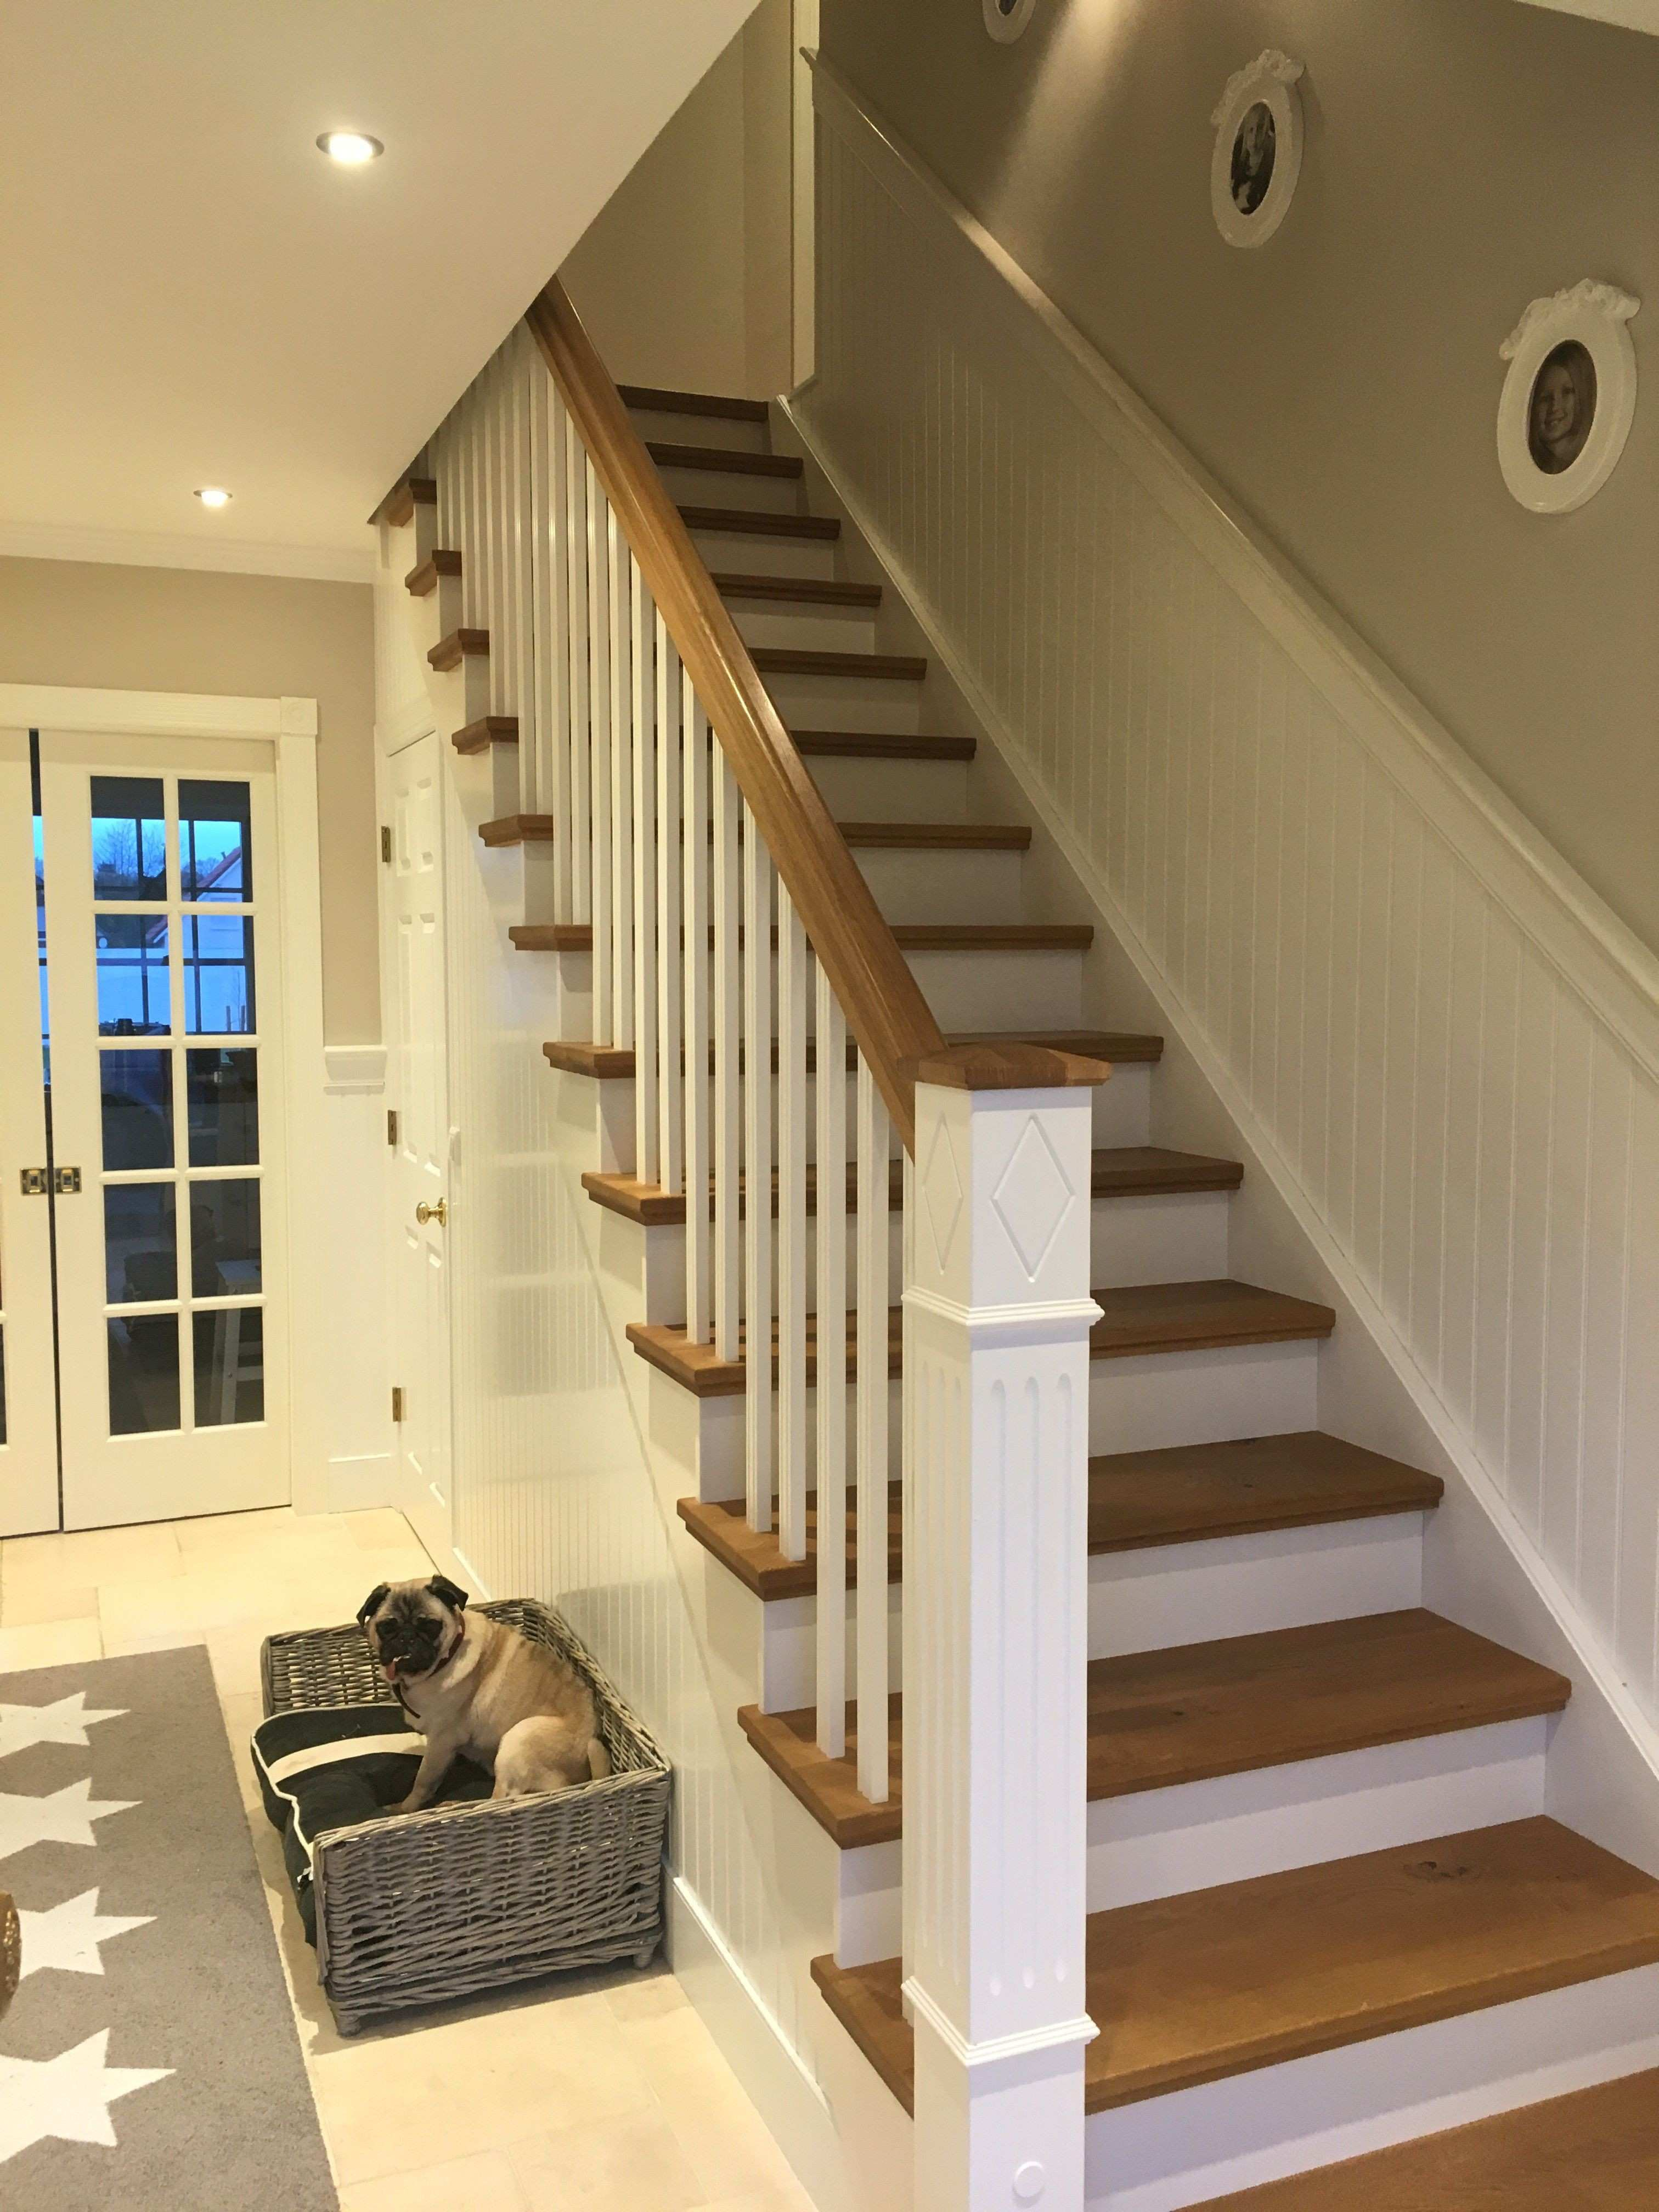 Pictures On Staircase Wall Inspirational Wainscoting Staircase Wall  Inspirational Usa Eingangsbereich